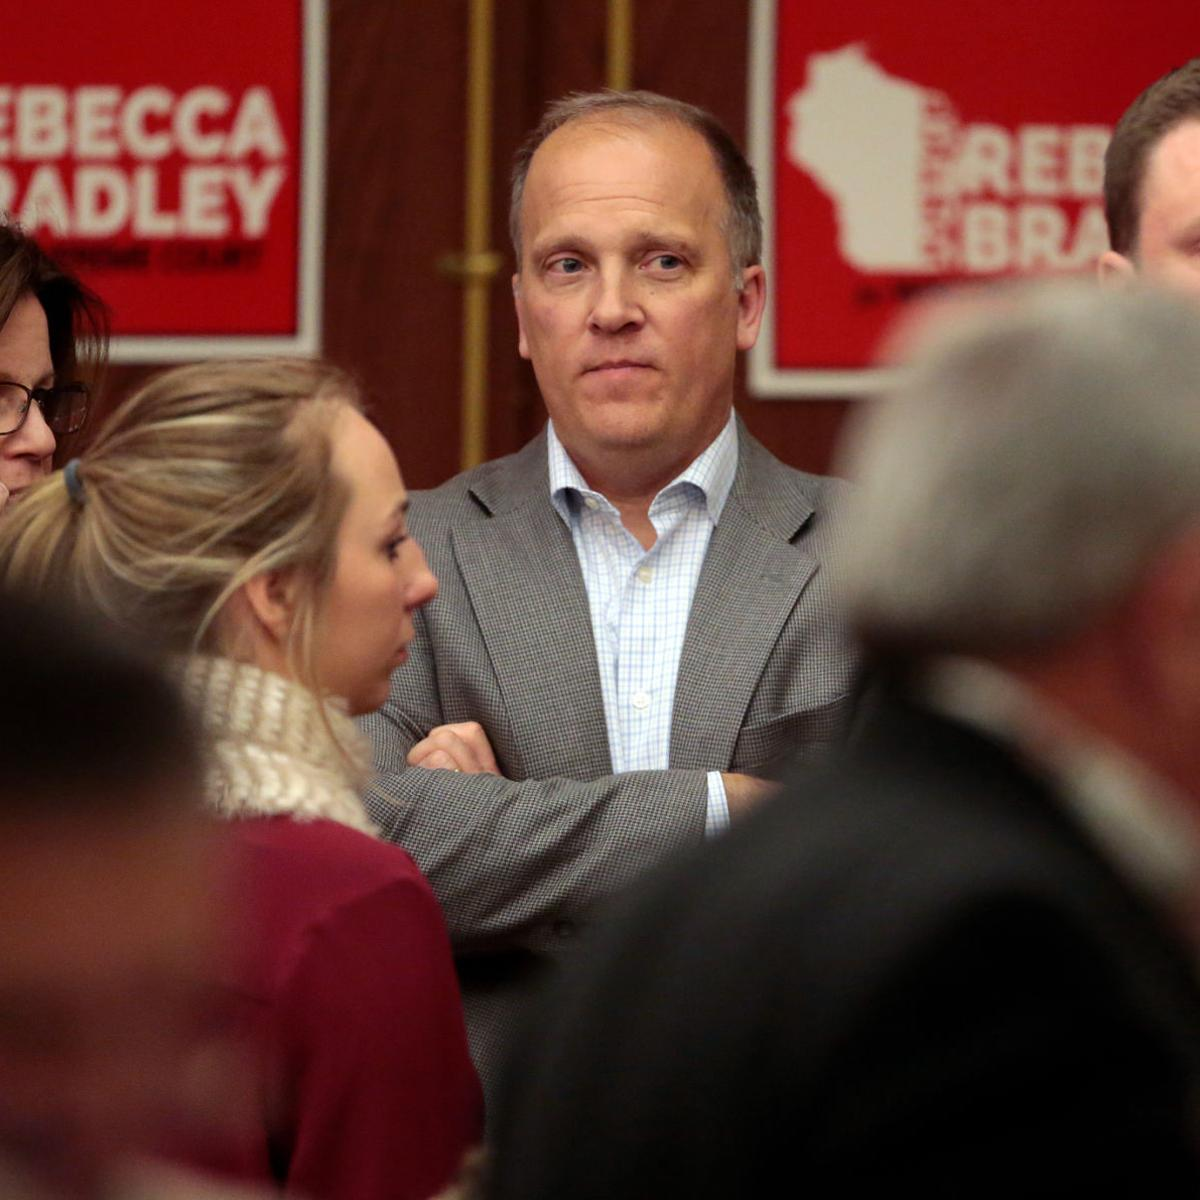 Attorney General Brad Schimel settles without fine in 3M pollution